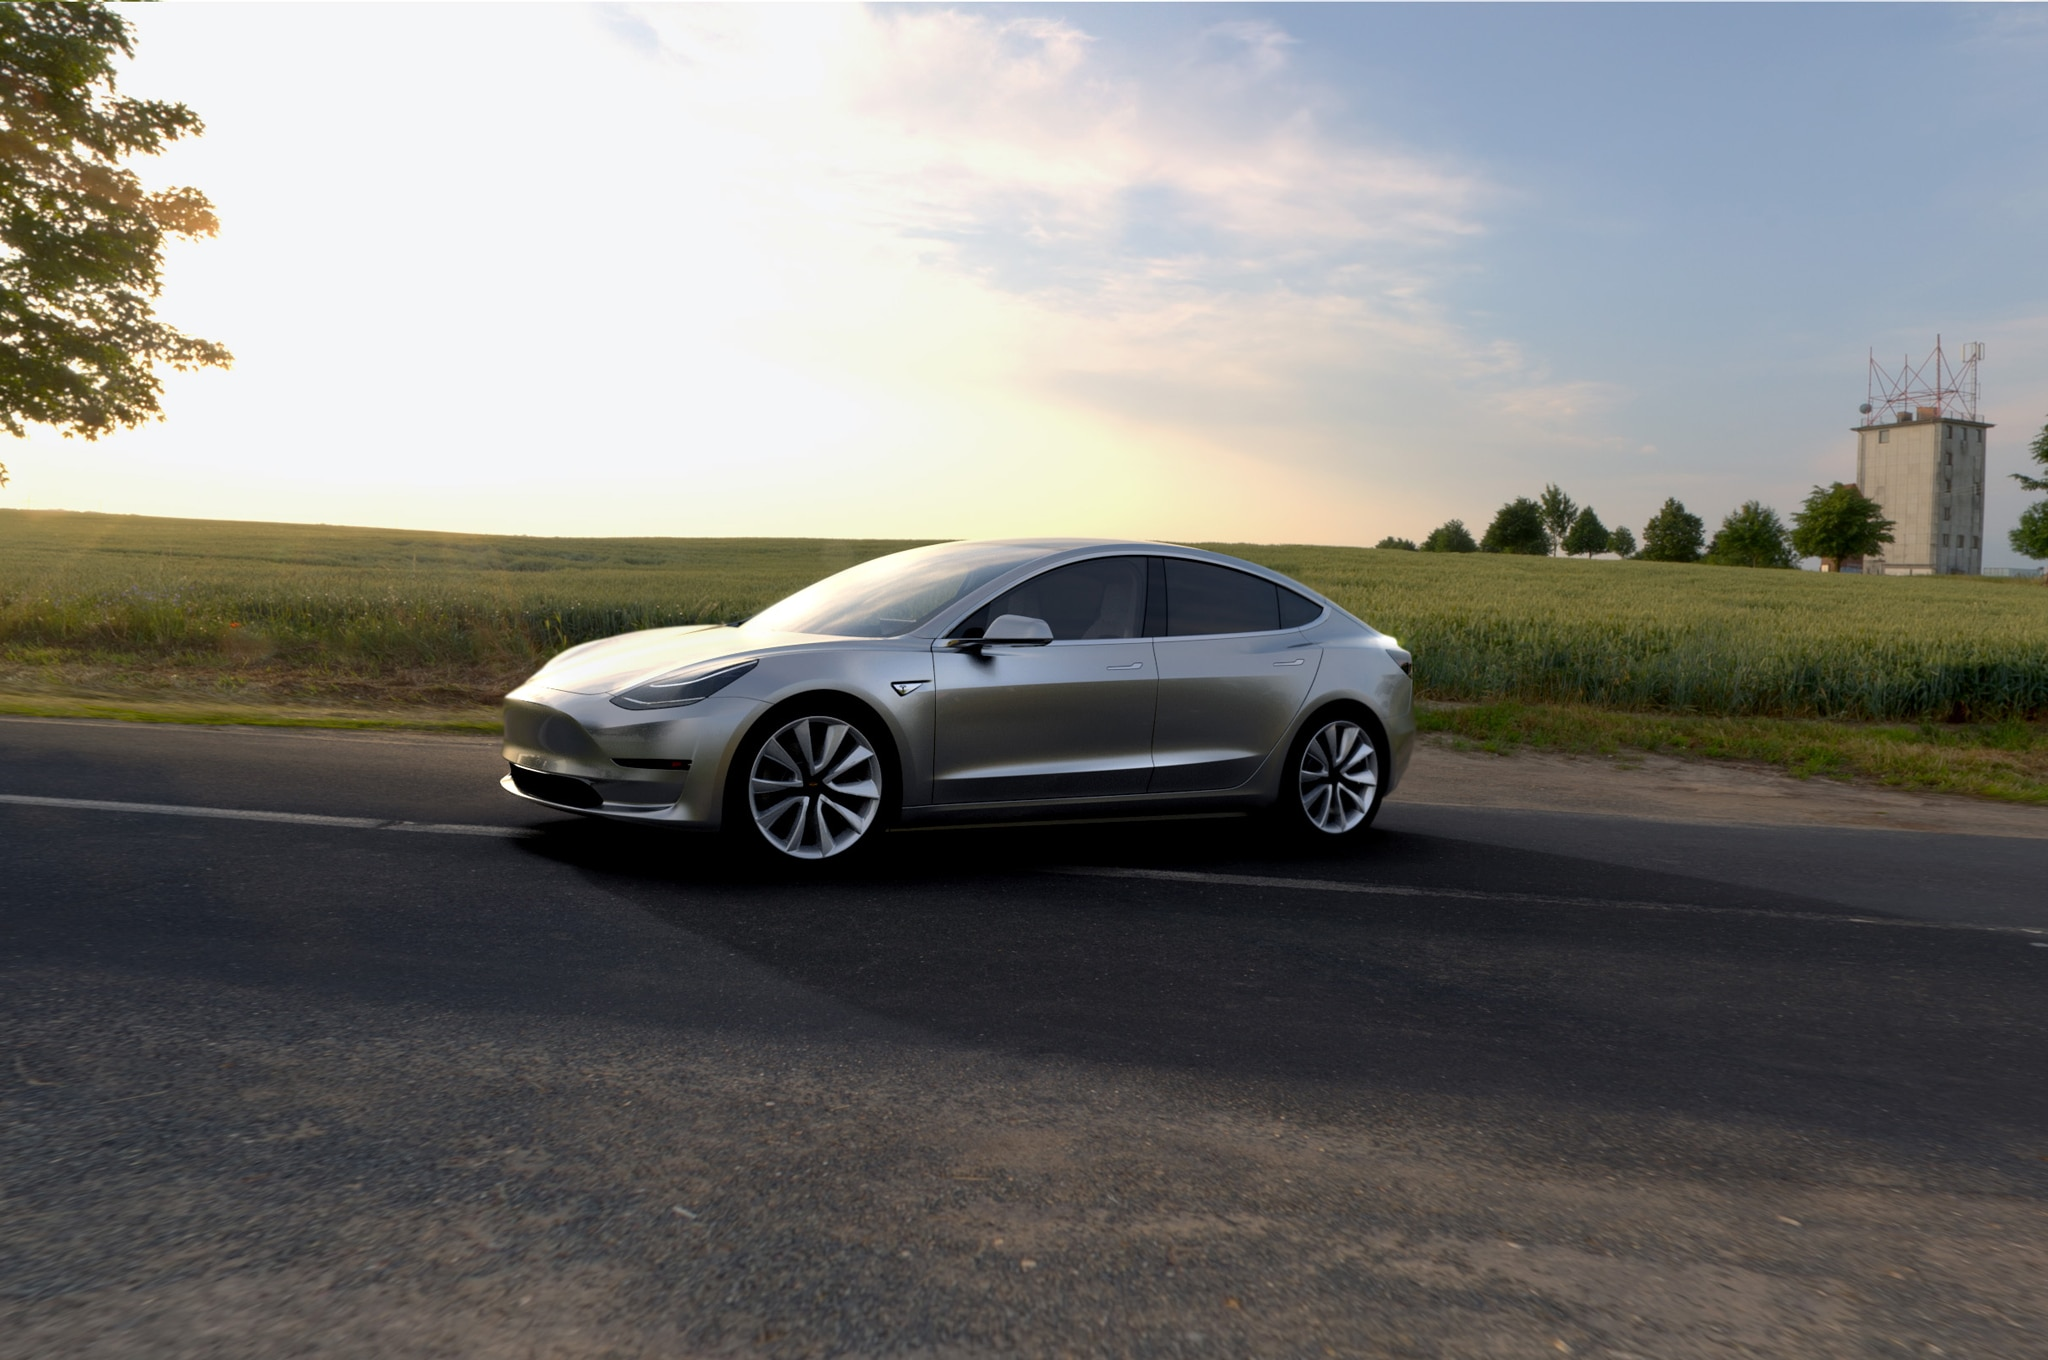 Tesla Model 3 Side Front View Parked With Scenery